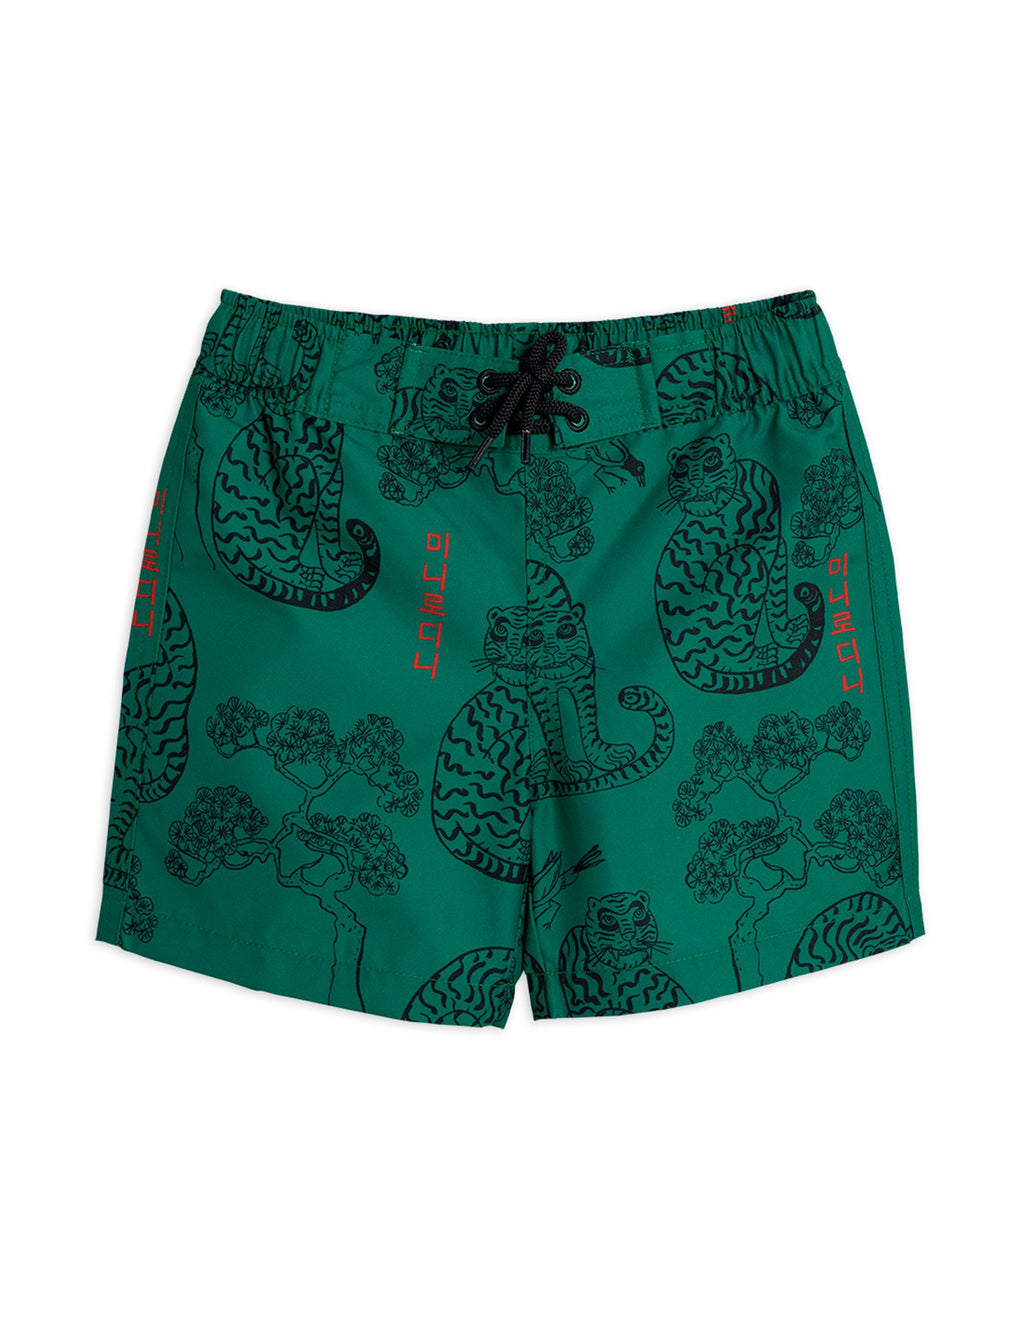 MINI RODINI / Tiger swim shorts